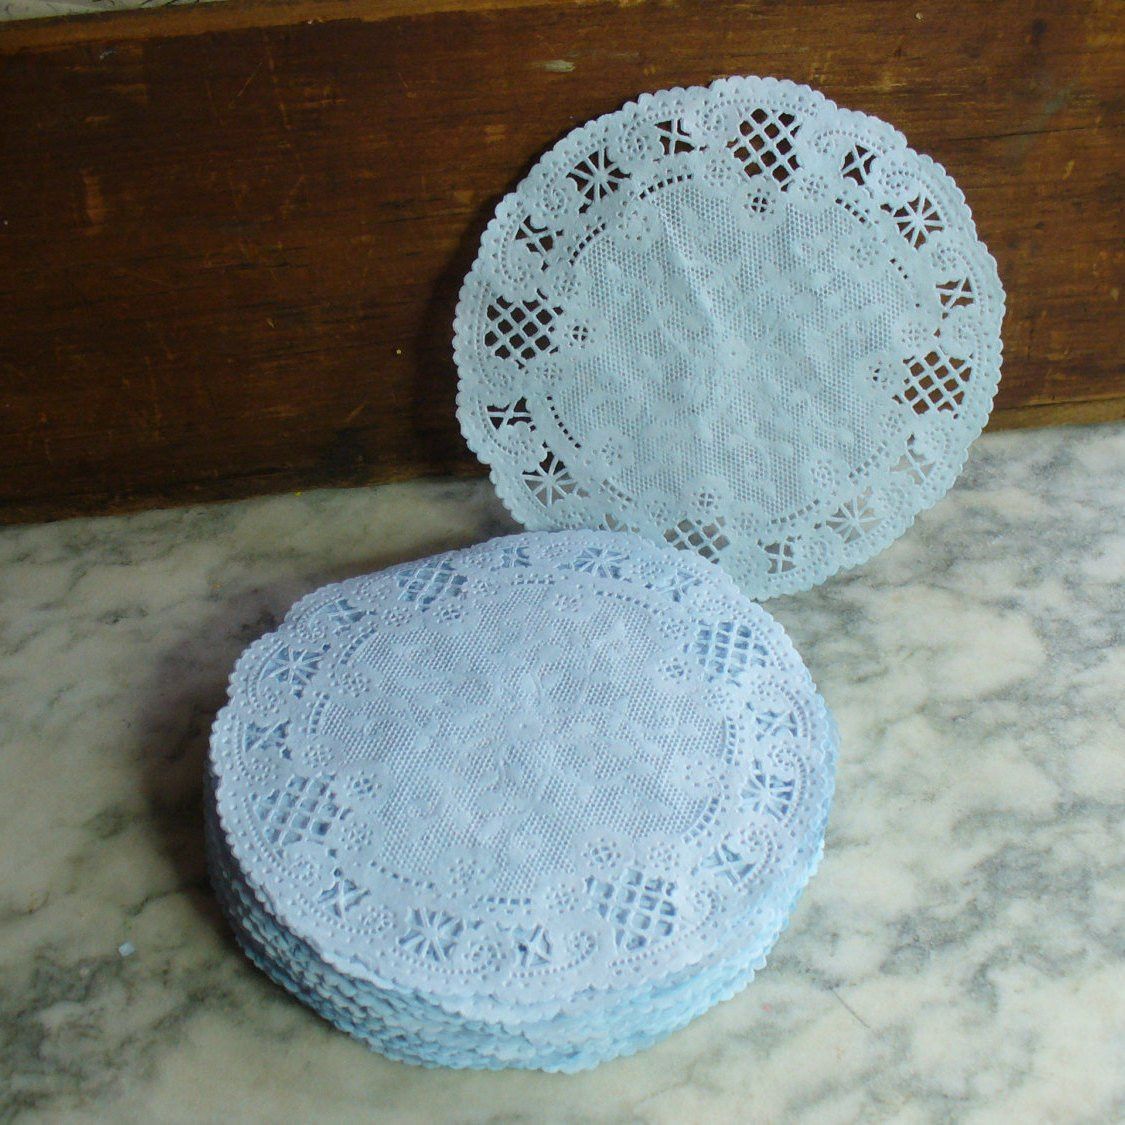 Blue Paper Doilies Awesome French Lace Paper Doilies Light Blue Hand Dyed 5 Inch Party Of Innovative 42 Pics Blue Paper Doilies